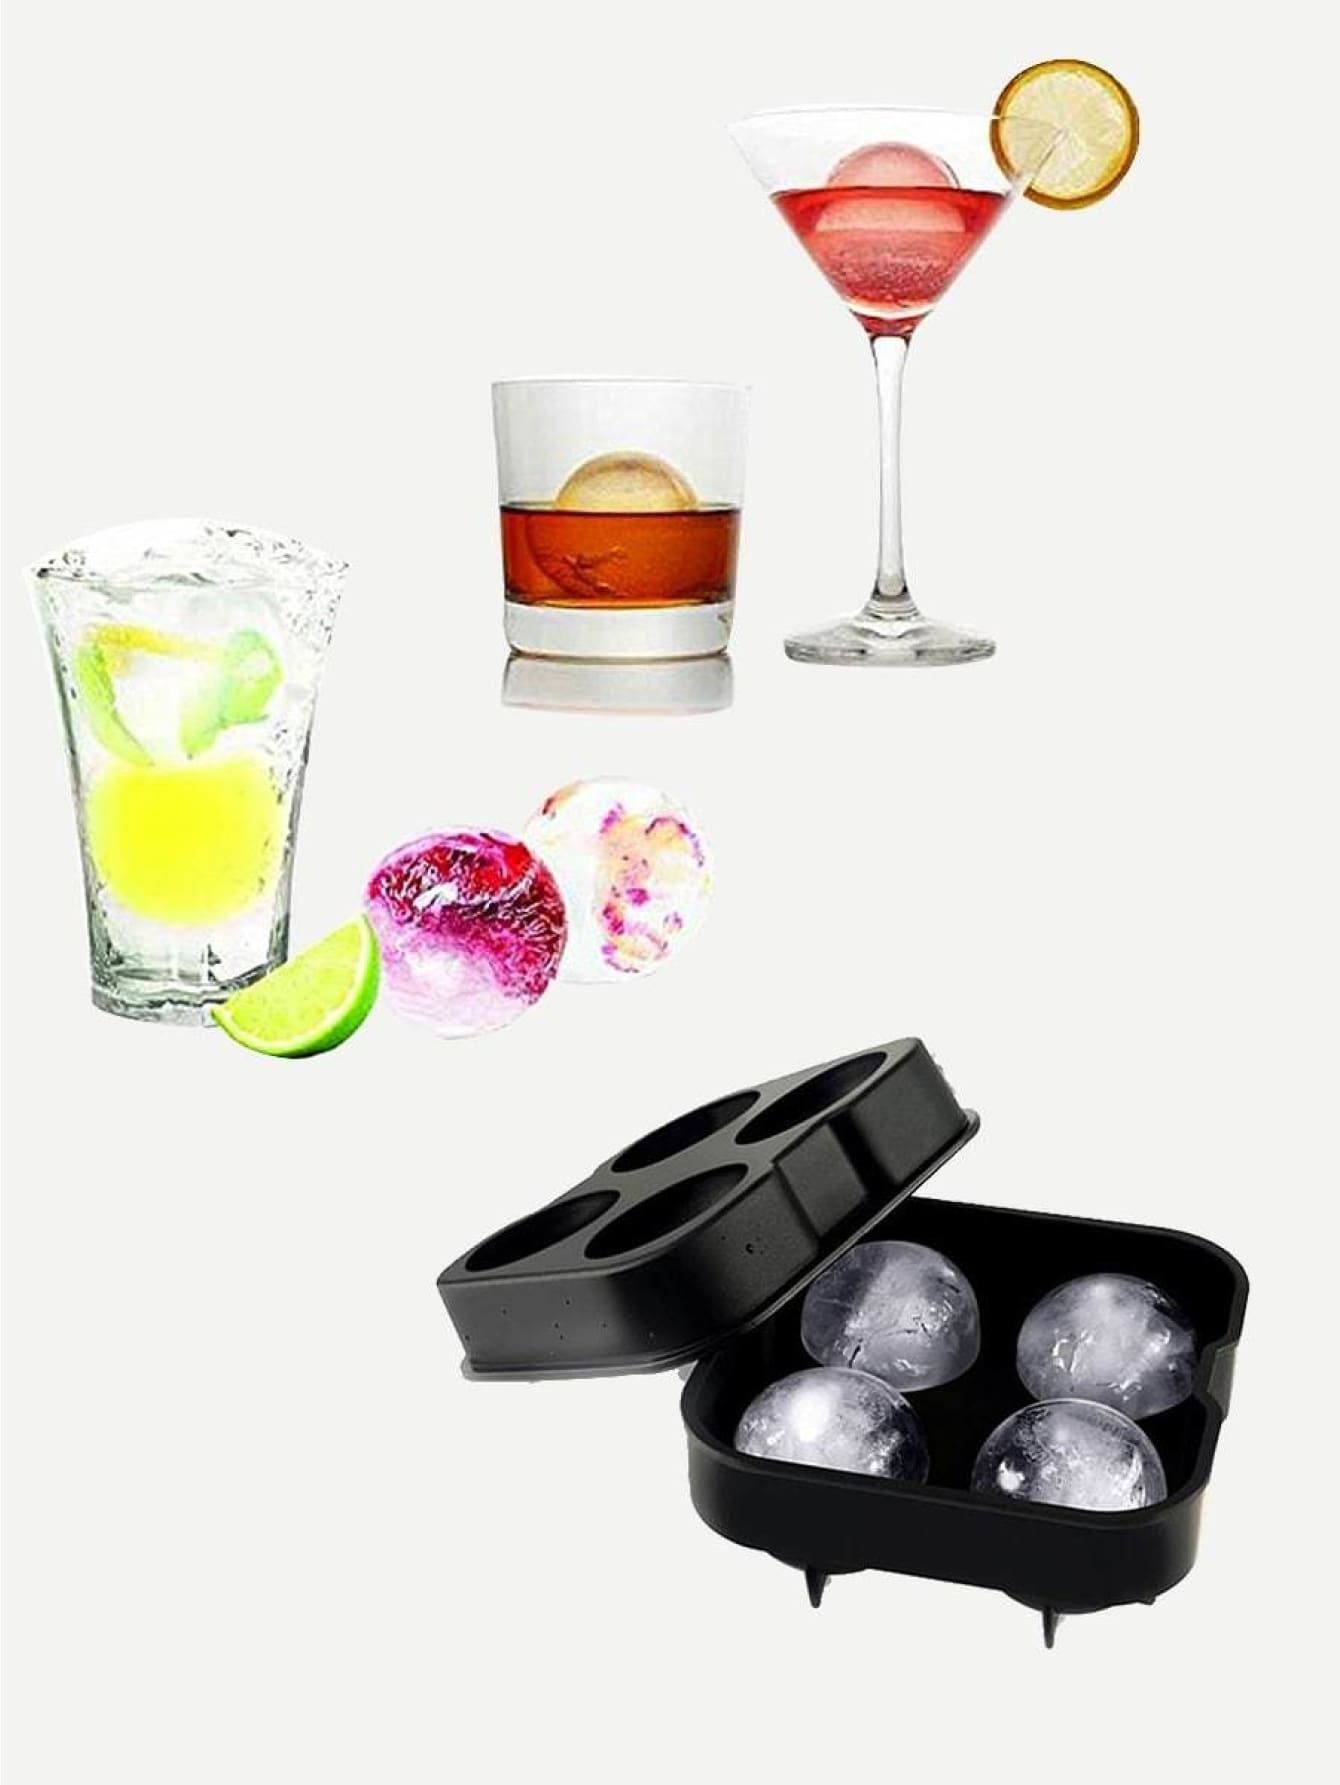 4 Compartment Ice Ball Mold 1Pc - Kitchen Tools